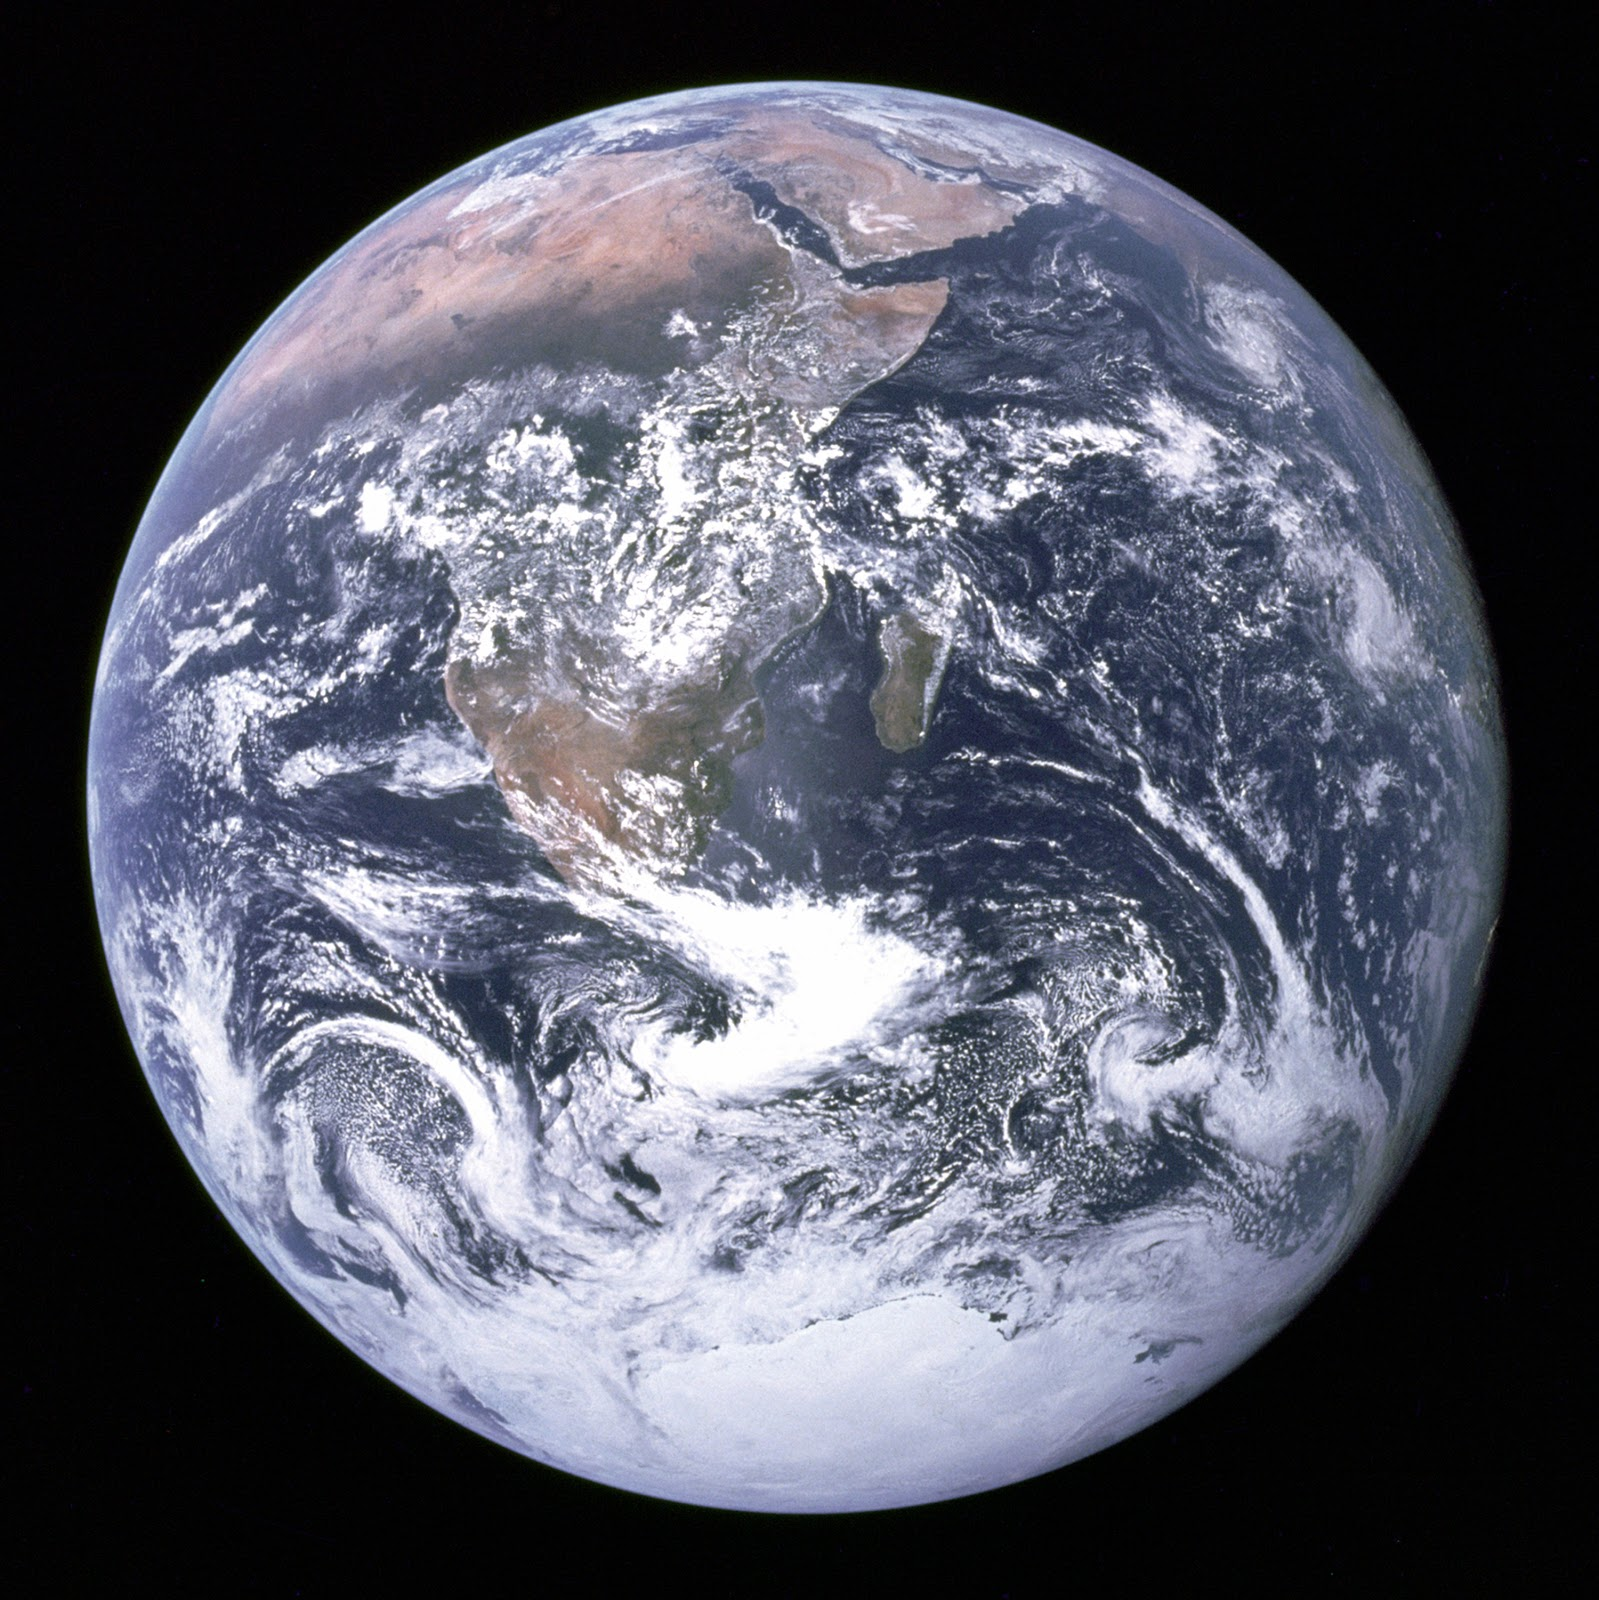 https://upload.wikimedia.org/wikipedia/commons/9/97/The_Earth_seen_from_Apollo_17.jpg